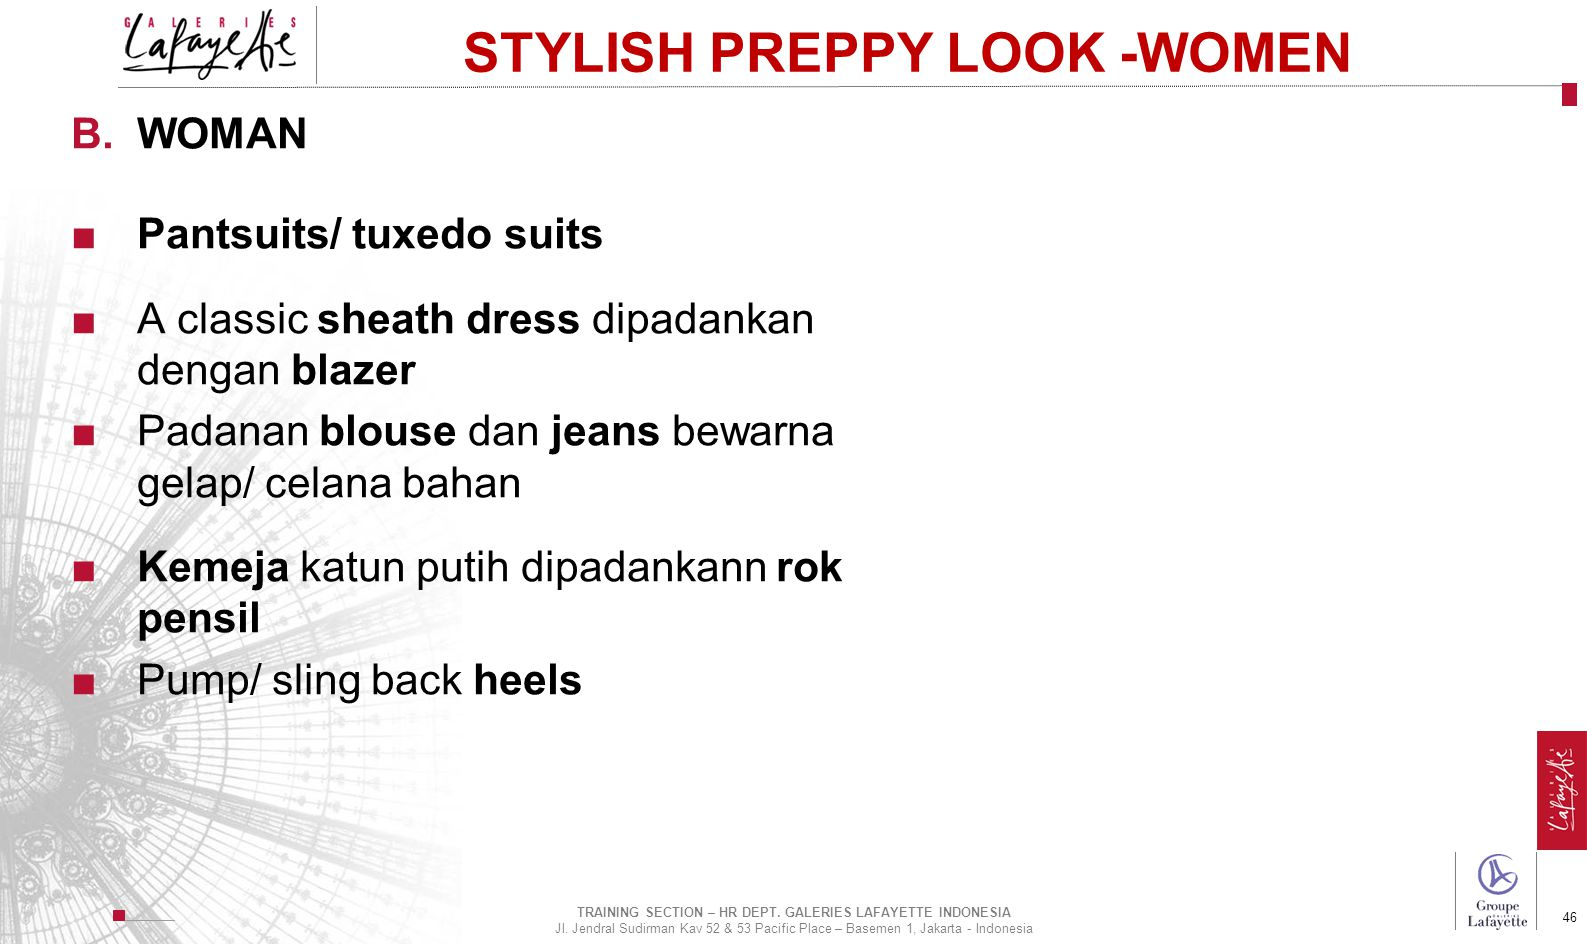 Direction de l'International 46 STYLISH PREPPY LOOK -WOMEN B.WOMAN ■Pantsuits/ tuxedo suits ■A classic sheath dress dipadankan dengan blazer ■Padanan